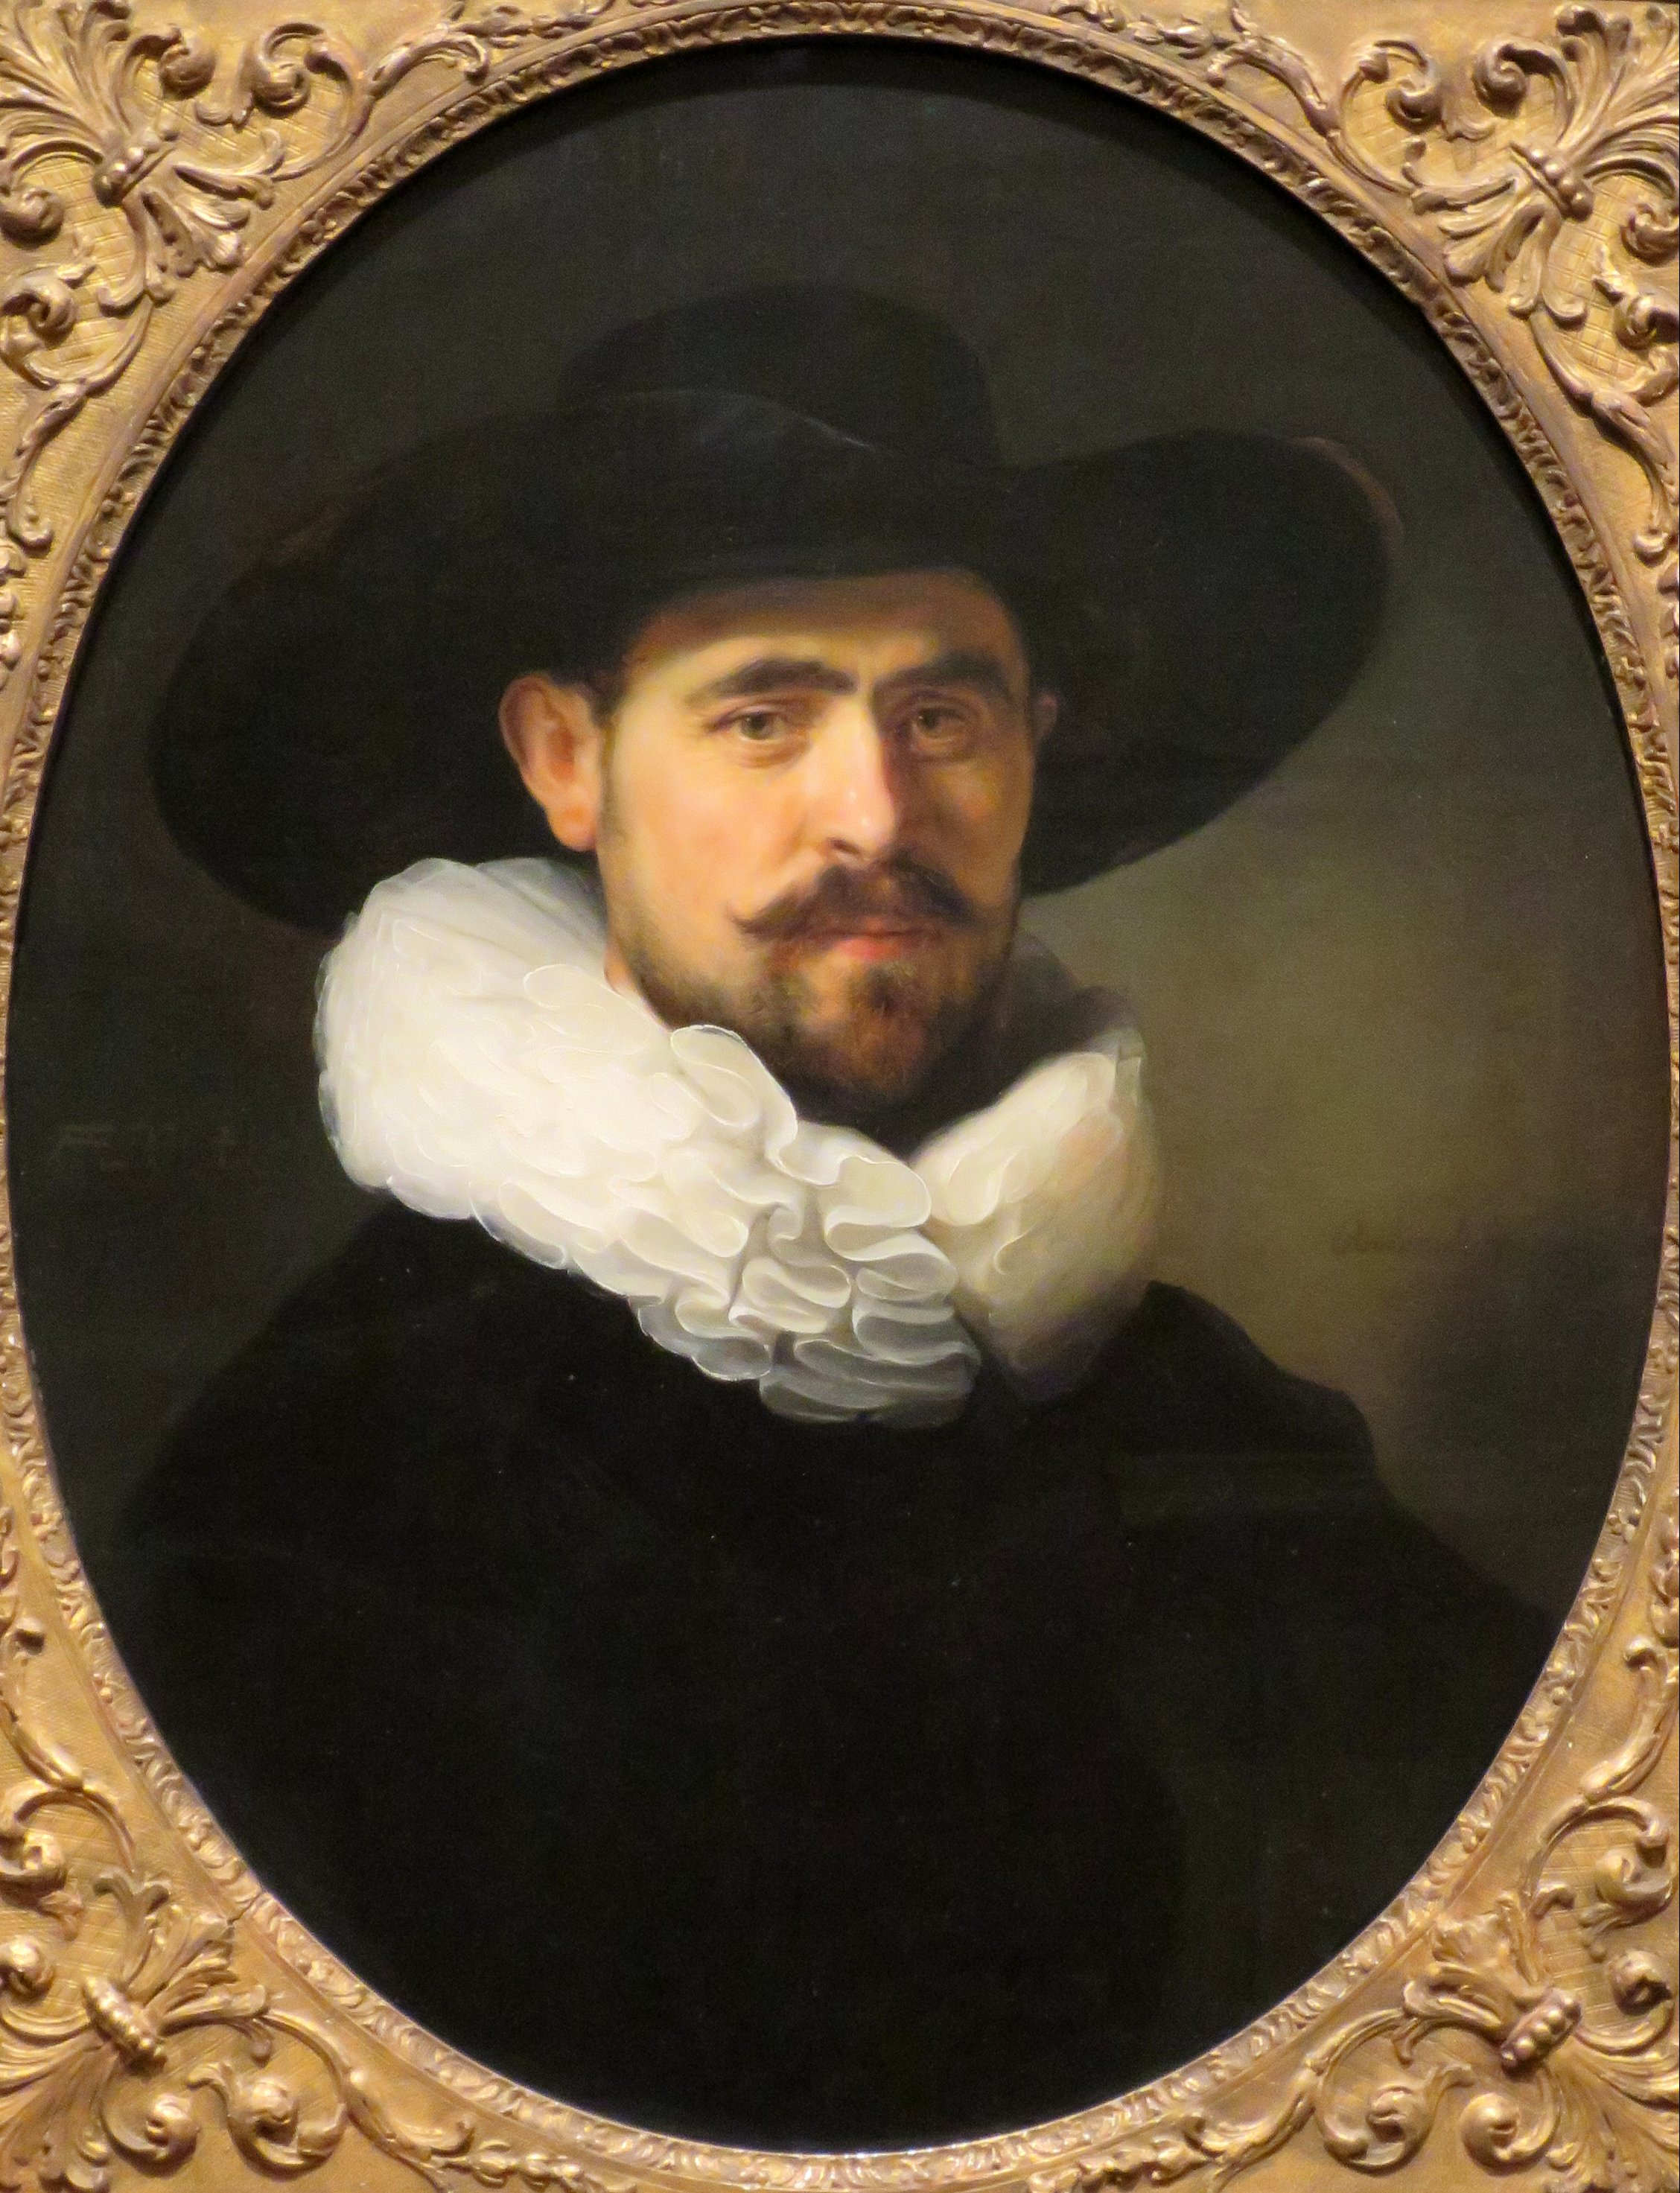 https://upload.wikimedia.org/wikipedia/commons/c/c6/Rembrandt%2C_Portrait_of_a_Bearded_Man_in_a_Wide-Brimmed_Hat_%28probably_Pieter_Seijen%29%2C_1633%2C_Norton_Simon_Museum%2C_Pasadena.jpg